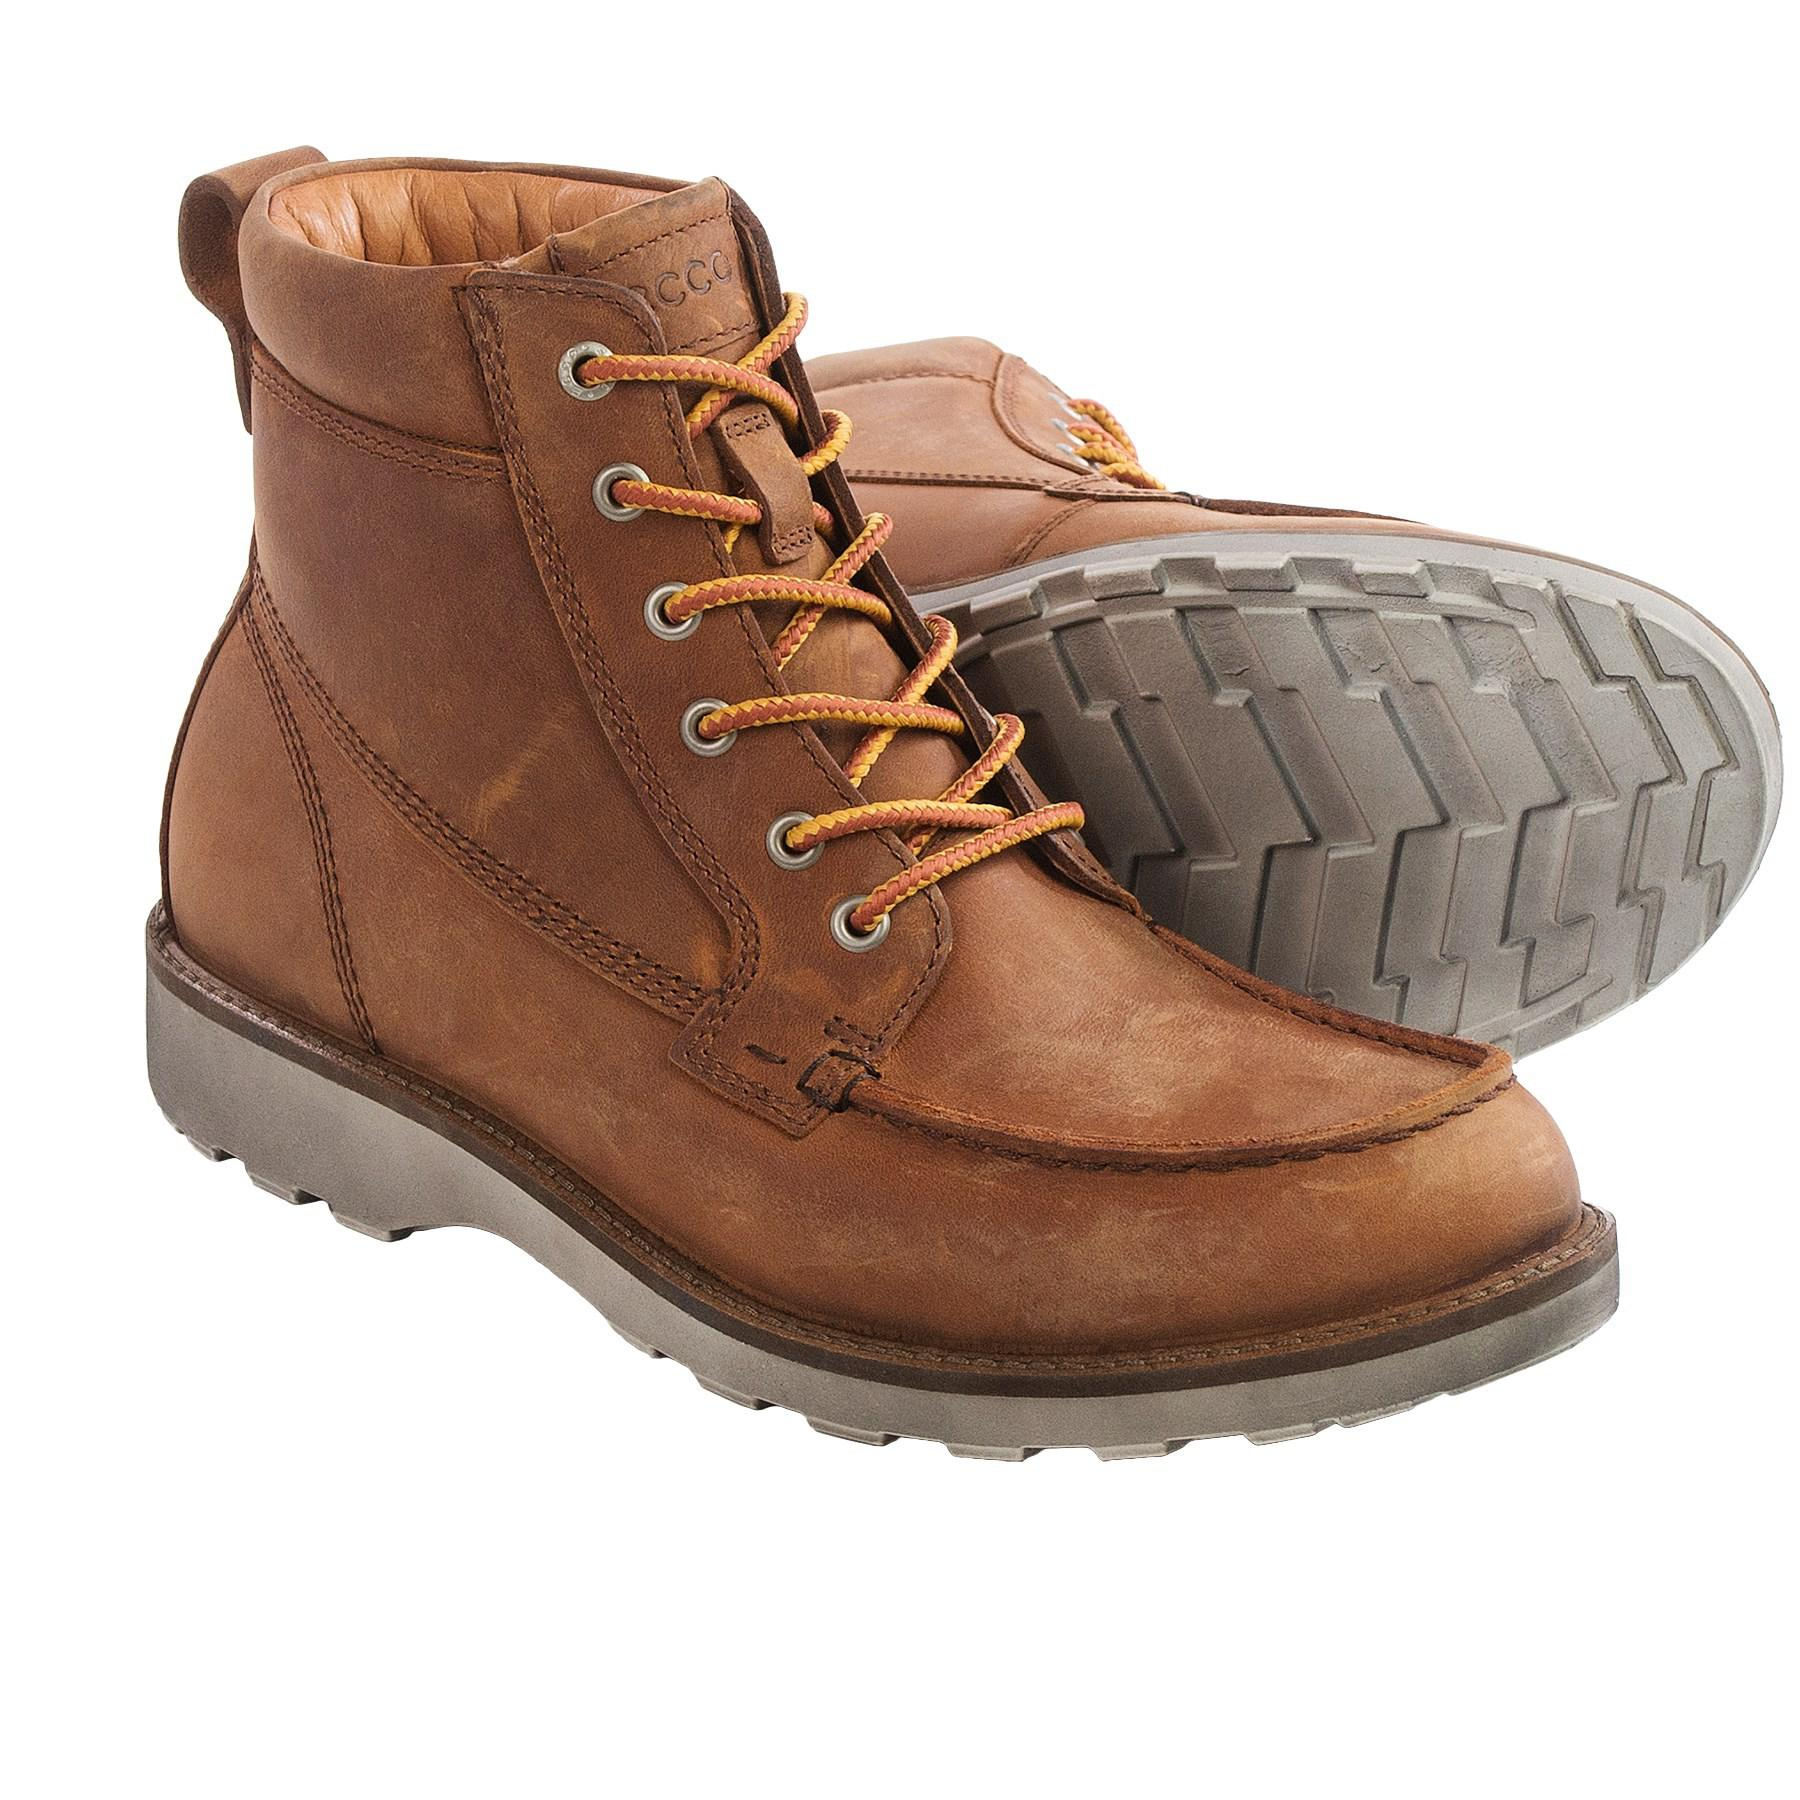 47a155206a Ecco Holbrok Moc Lace Boots in Brown for Men - Lyst